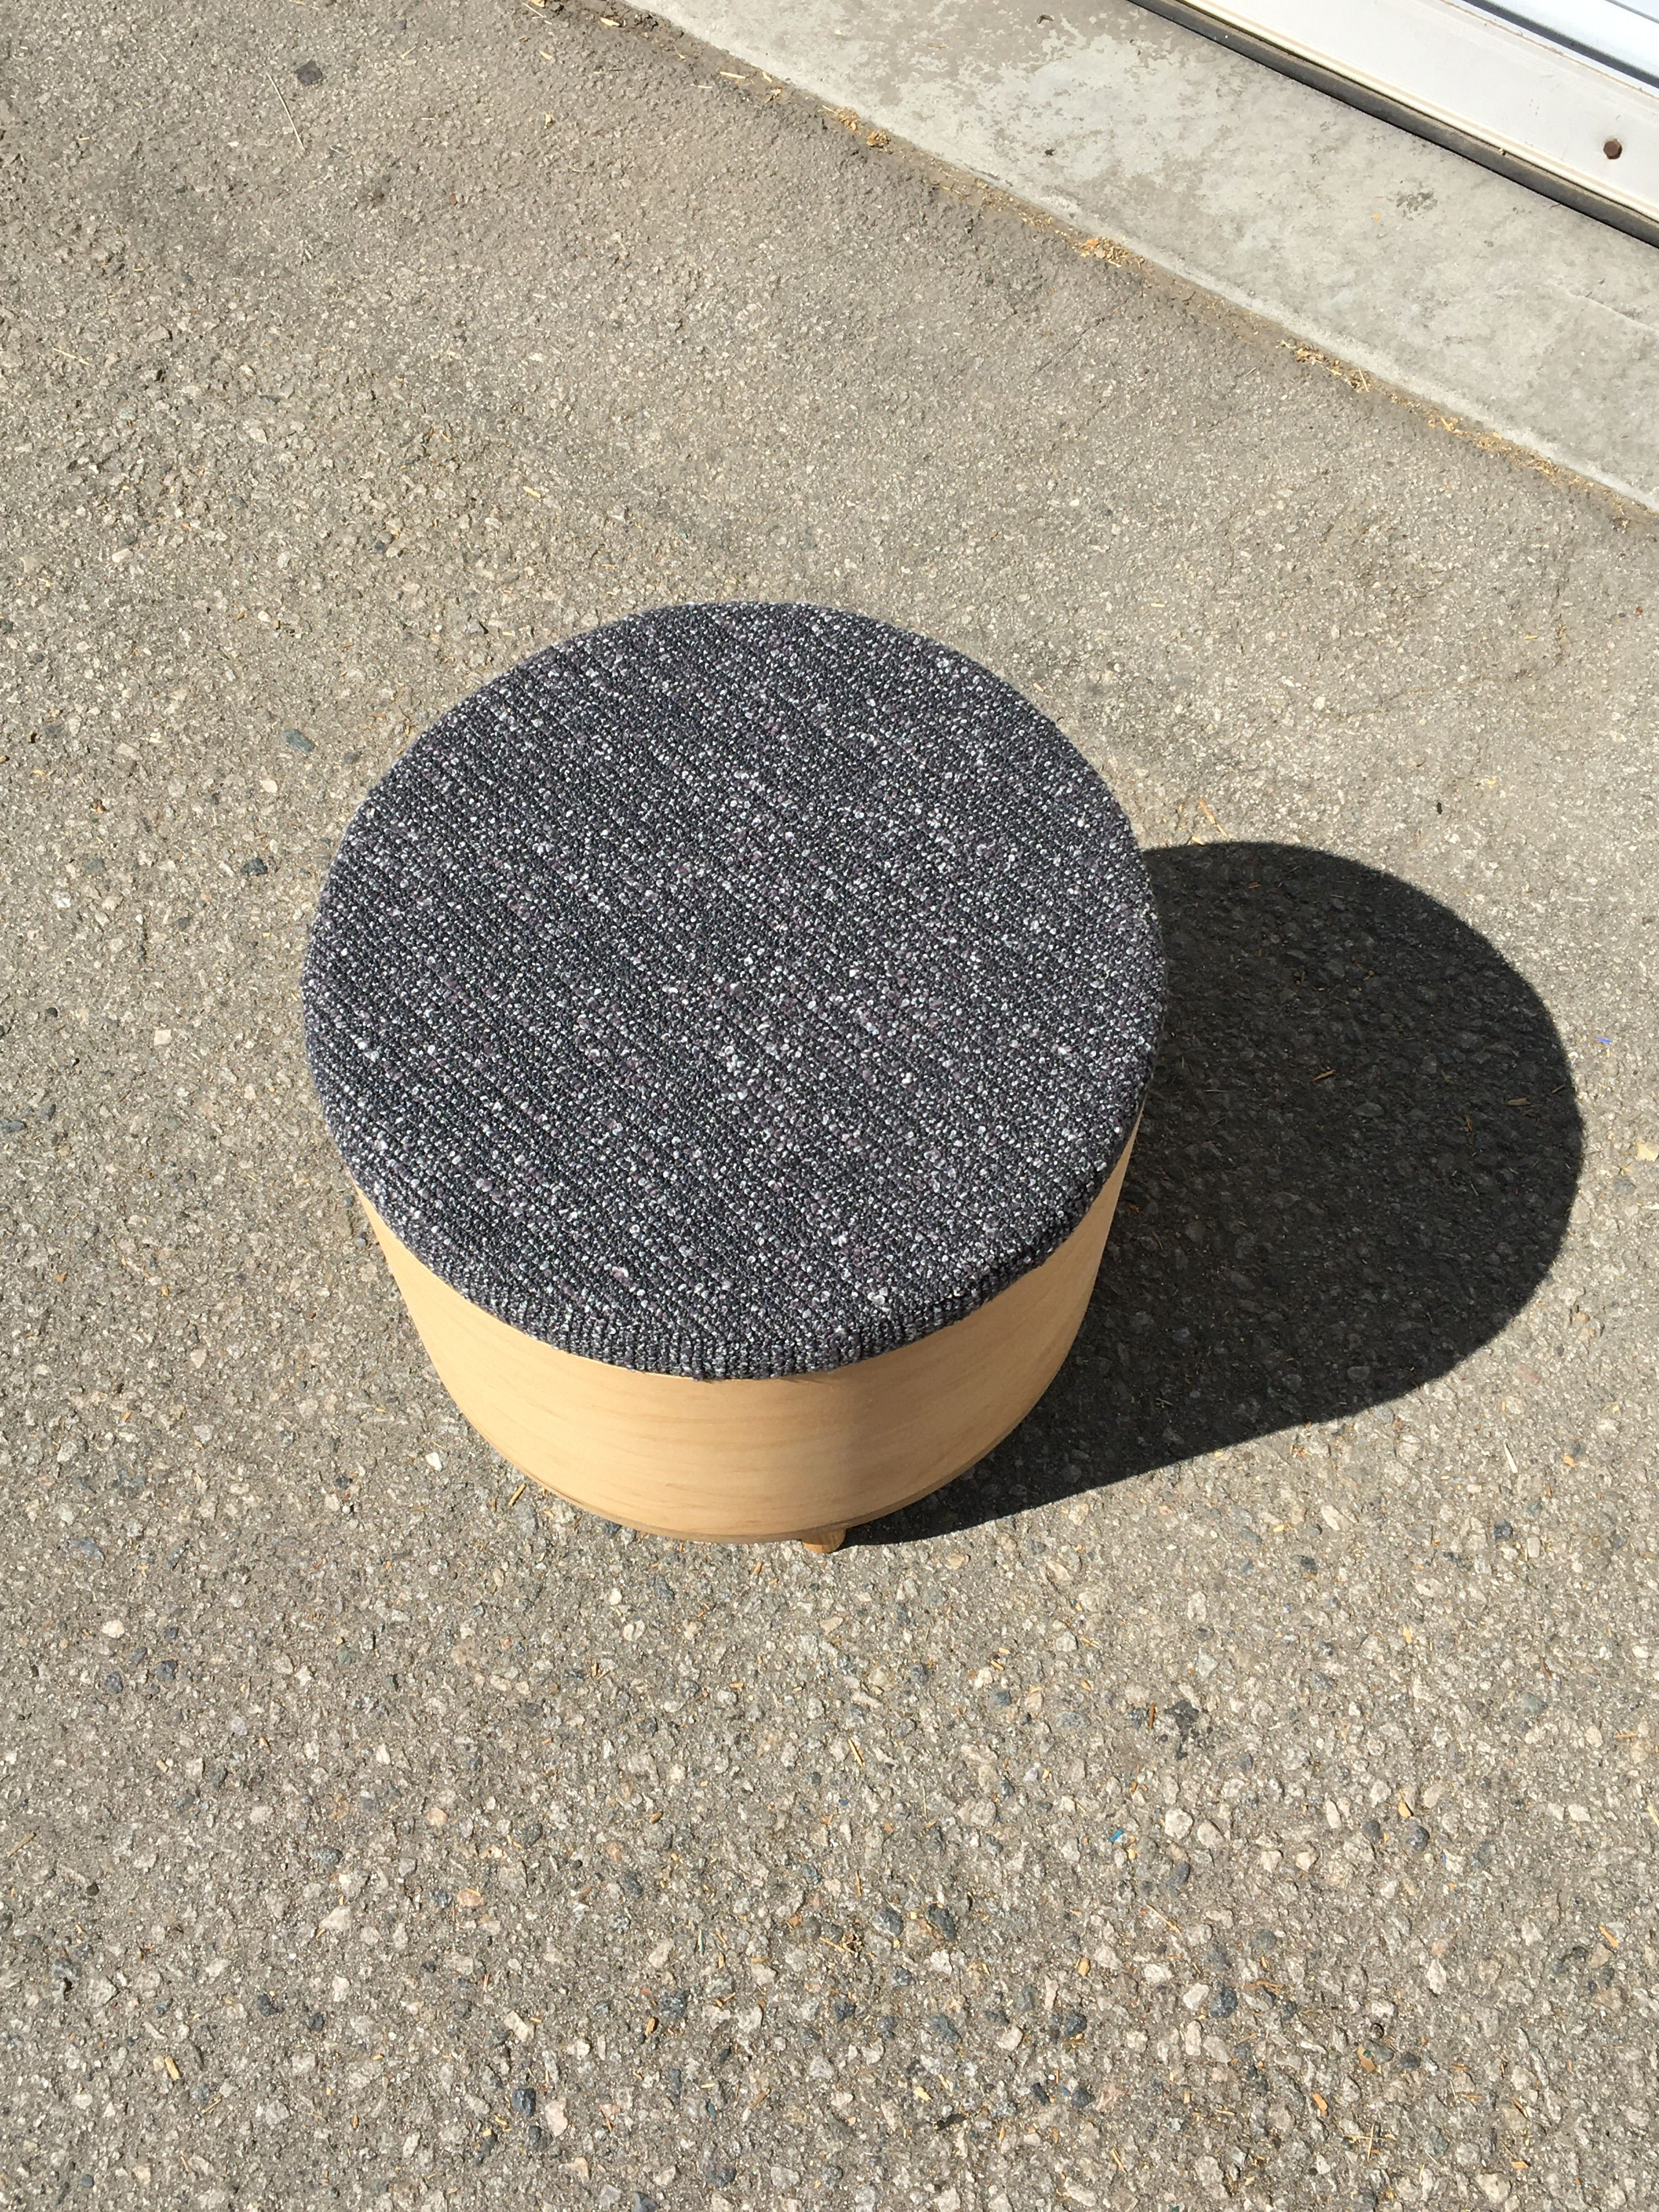 Upholstered Cartridge Table product image 1